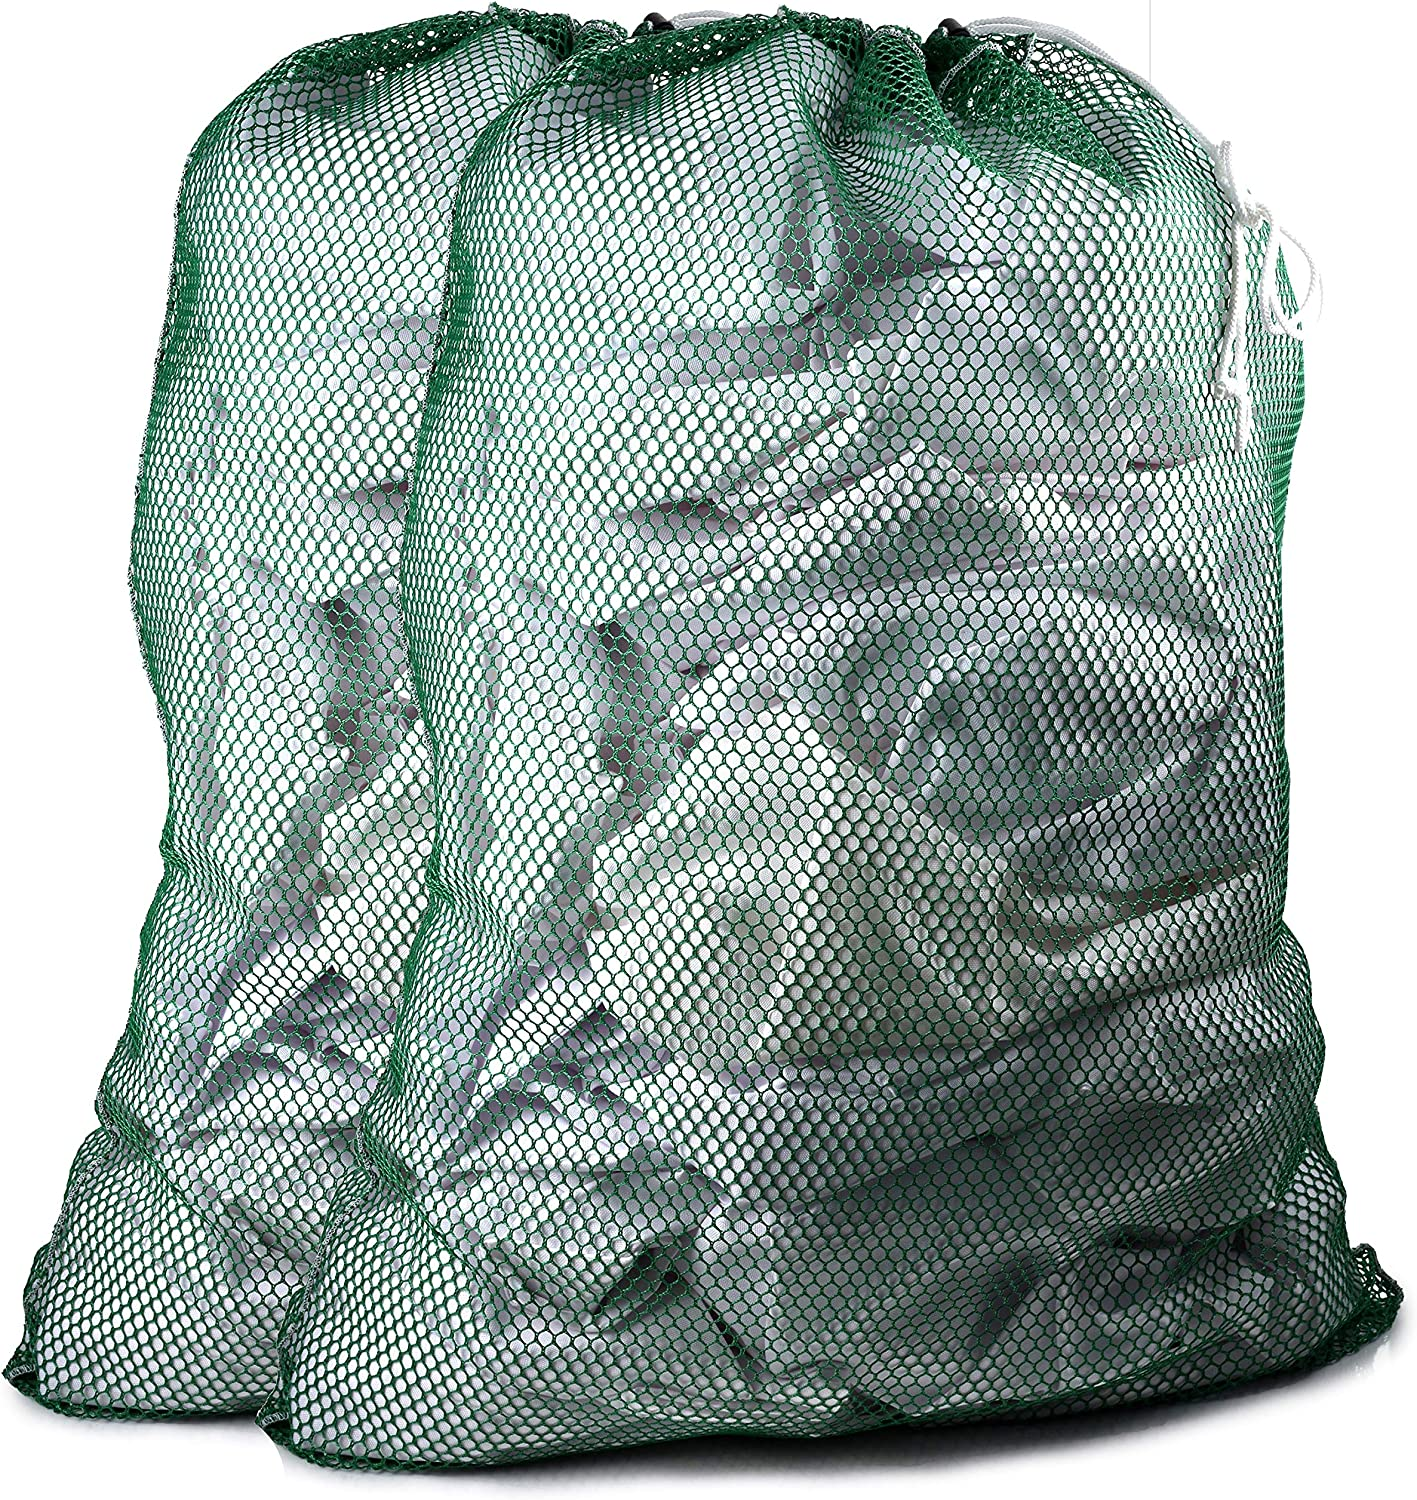 """Commercial Mesh Laundry Bag - Sturdy Mesh Material with Drawstring Closure. Ideal Machine Washable Mesh Laundry Bag for Factories, College, Dorm and Apartment Dwellers. (24"""" x 36""""   Green   2-Pack)"""